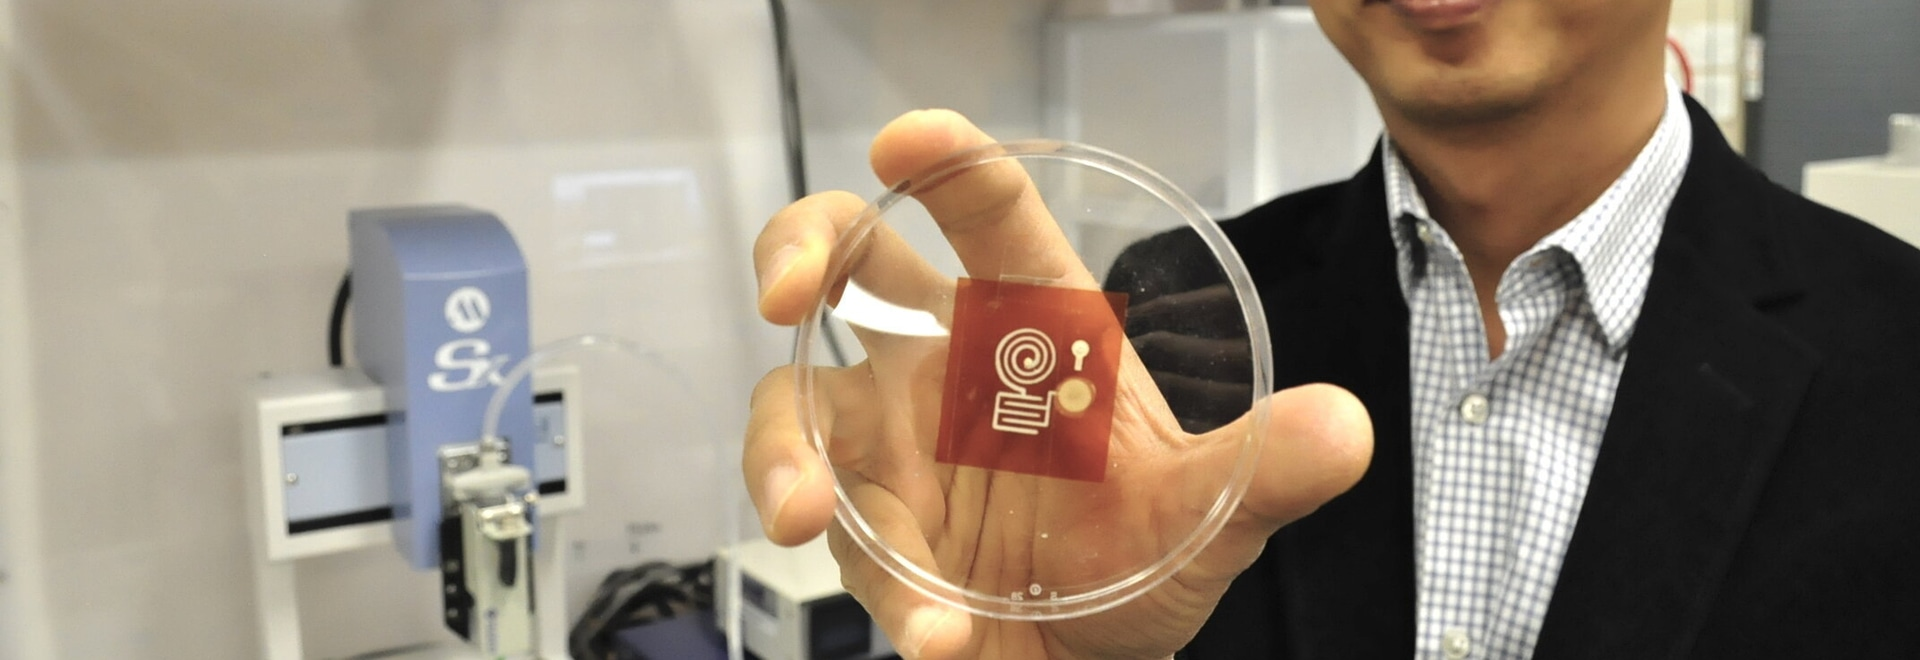 Scientists Use Cellulose Material to 3D Print Wireless IoT Sensors